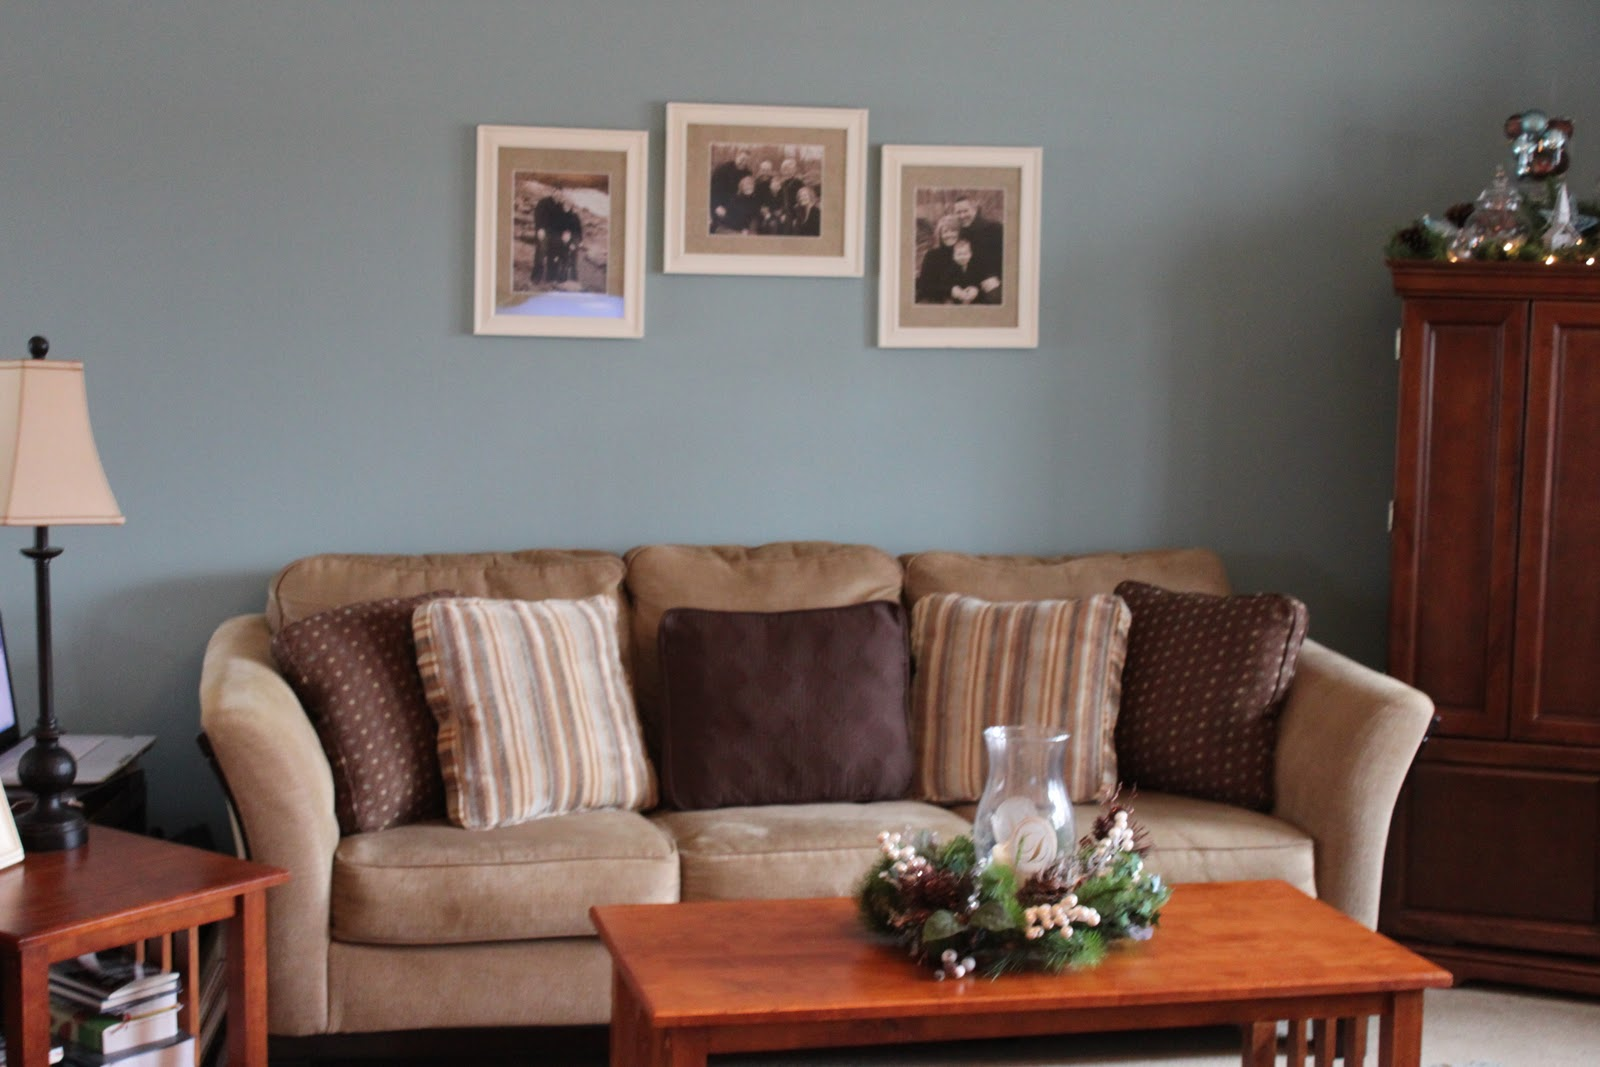 Board/Batten Gallery Wall in the Living Room - Love of Family & Home